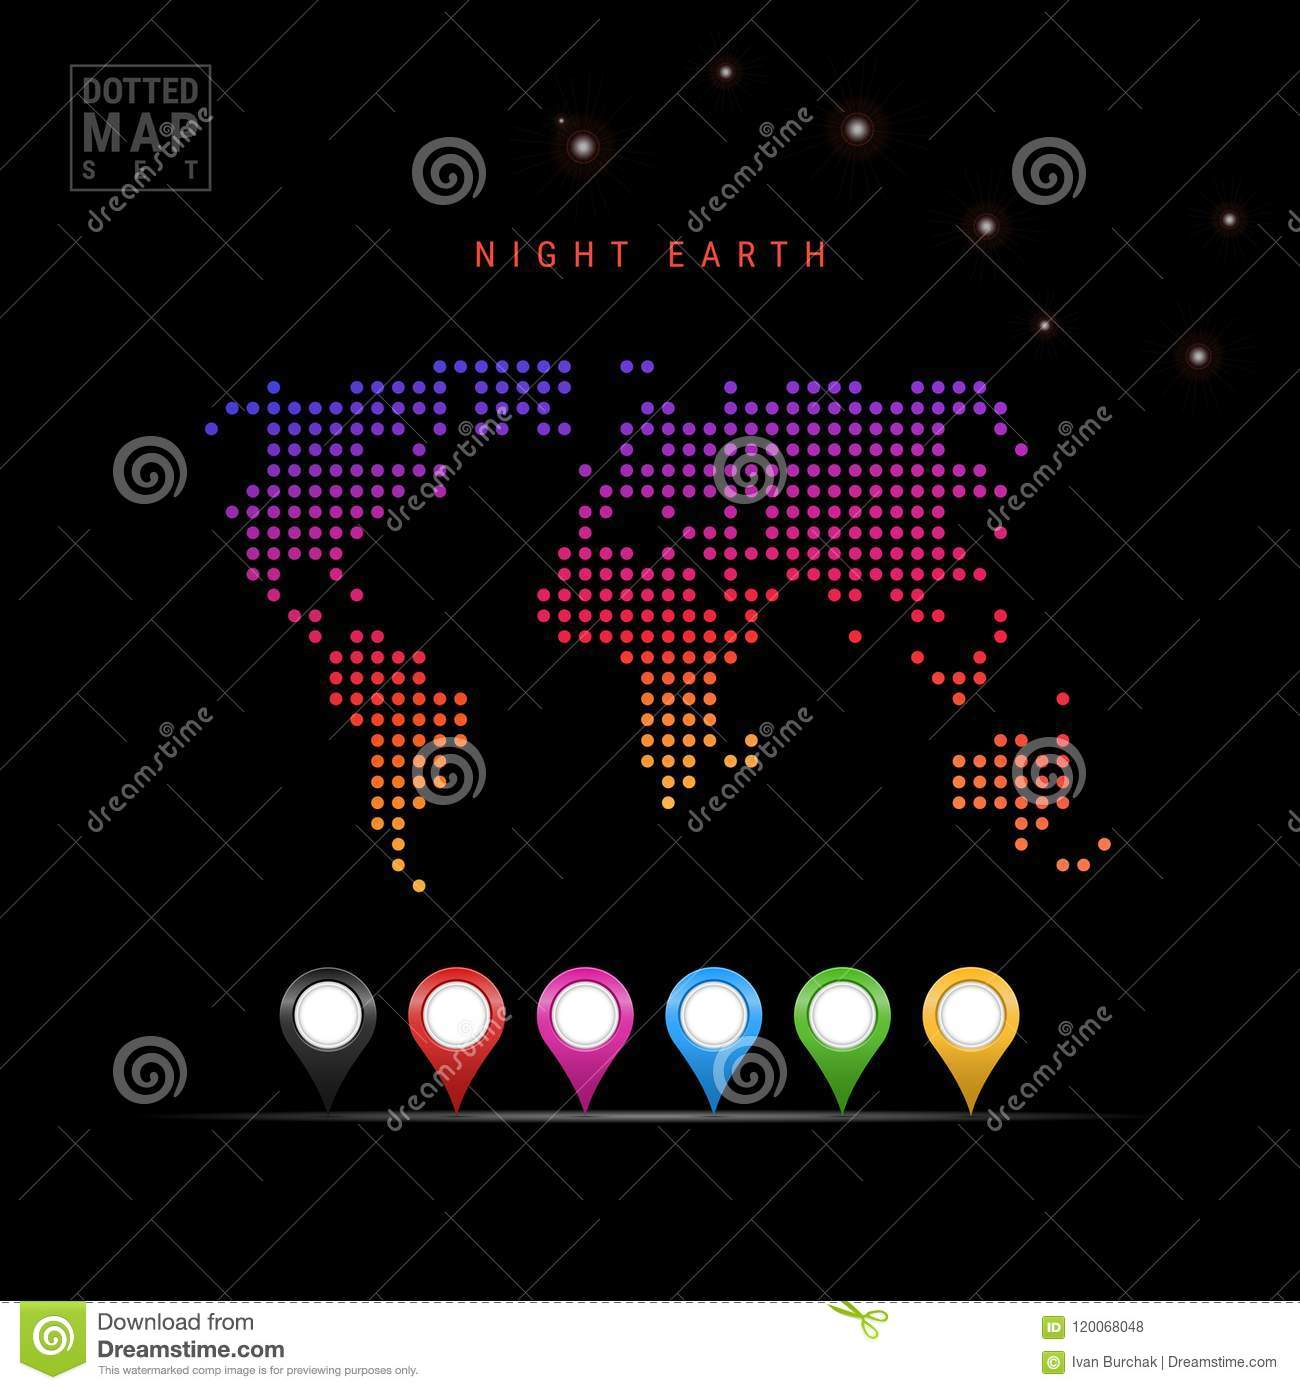 Dots Pattern Vector Map of Night Earth. Stylized Silhouette of the World. Ursa Major Constellation. Colored Map Markers